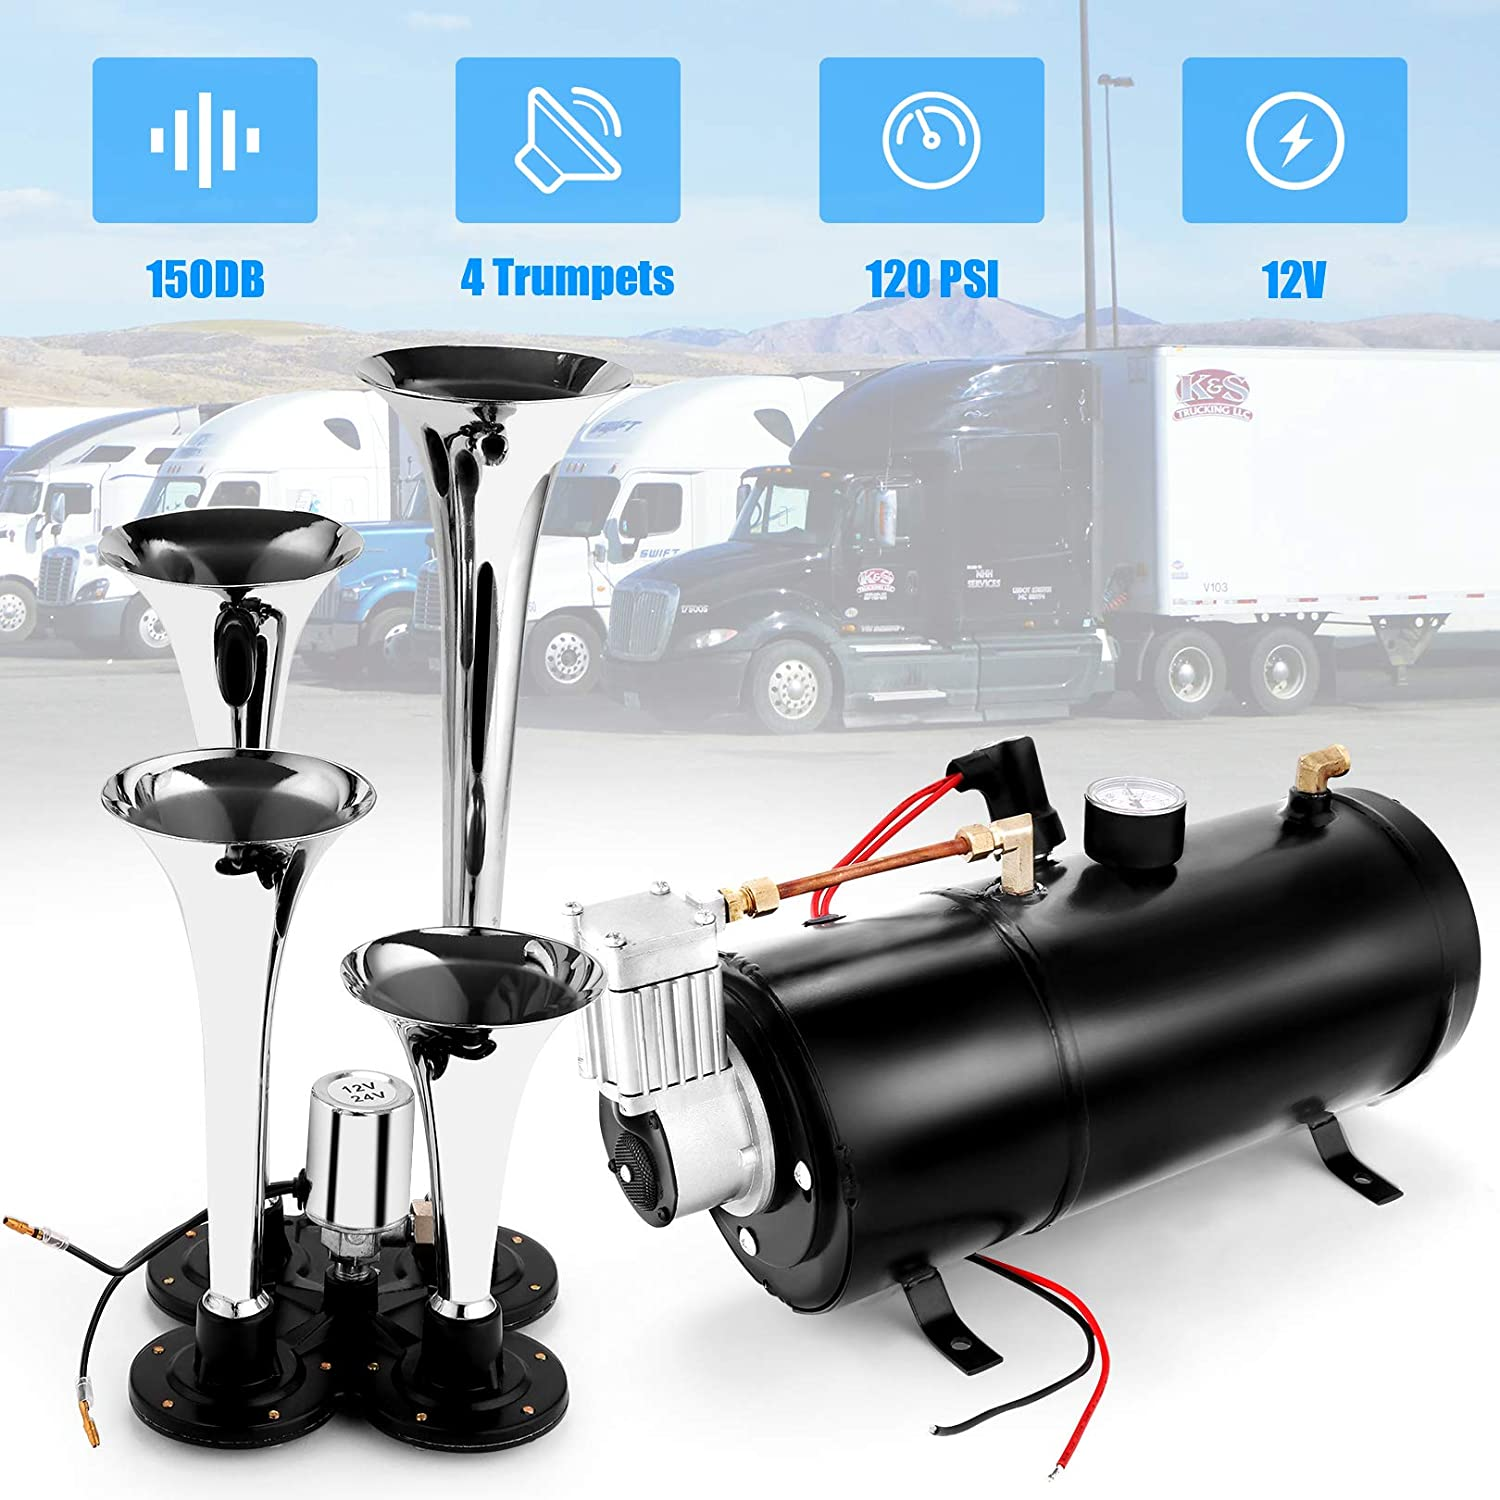 Truck 4 Trumpet Train Vehicle Air Horn with 120PSI Air Compressor for All Kinds of Vehicle 12V 150DB Car Air Horn Kit Black Car or SUV